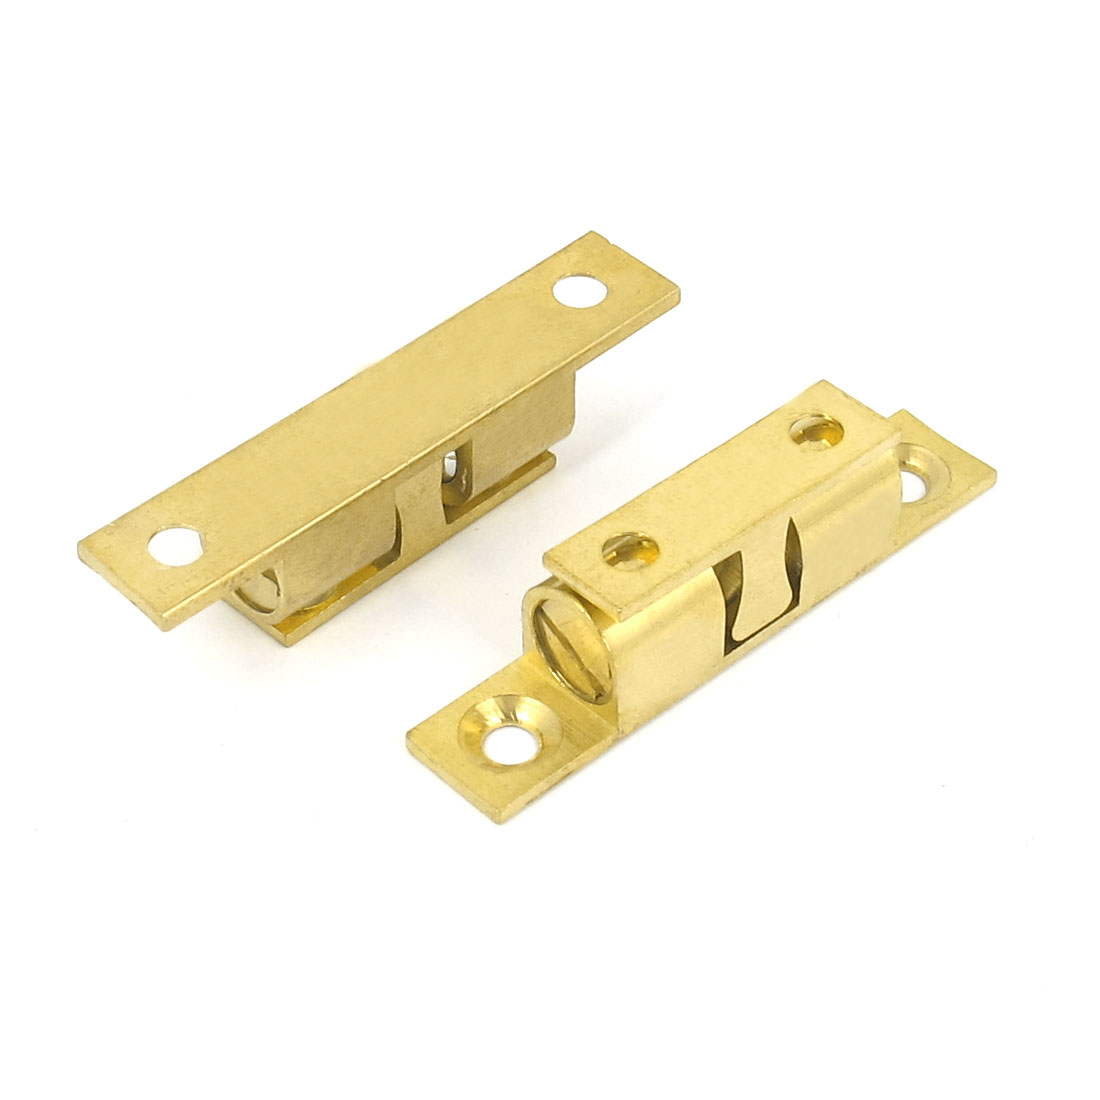 Furniture Cabinet Door Metal Double Ball Catch Latch Hardware Tool 50mm Long Gold Tone 2pcs